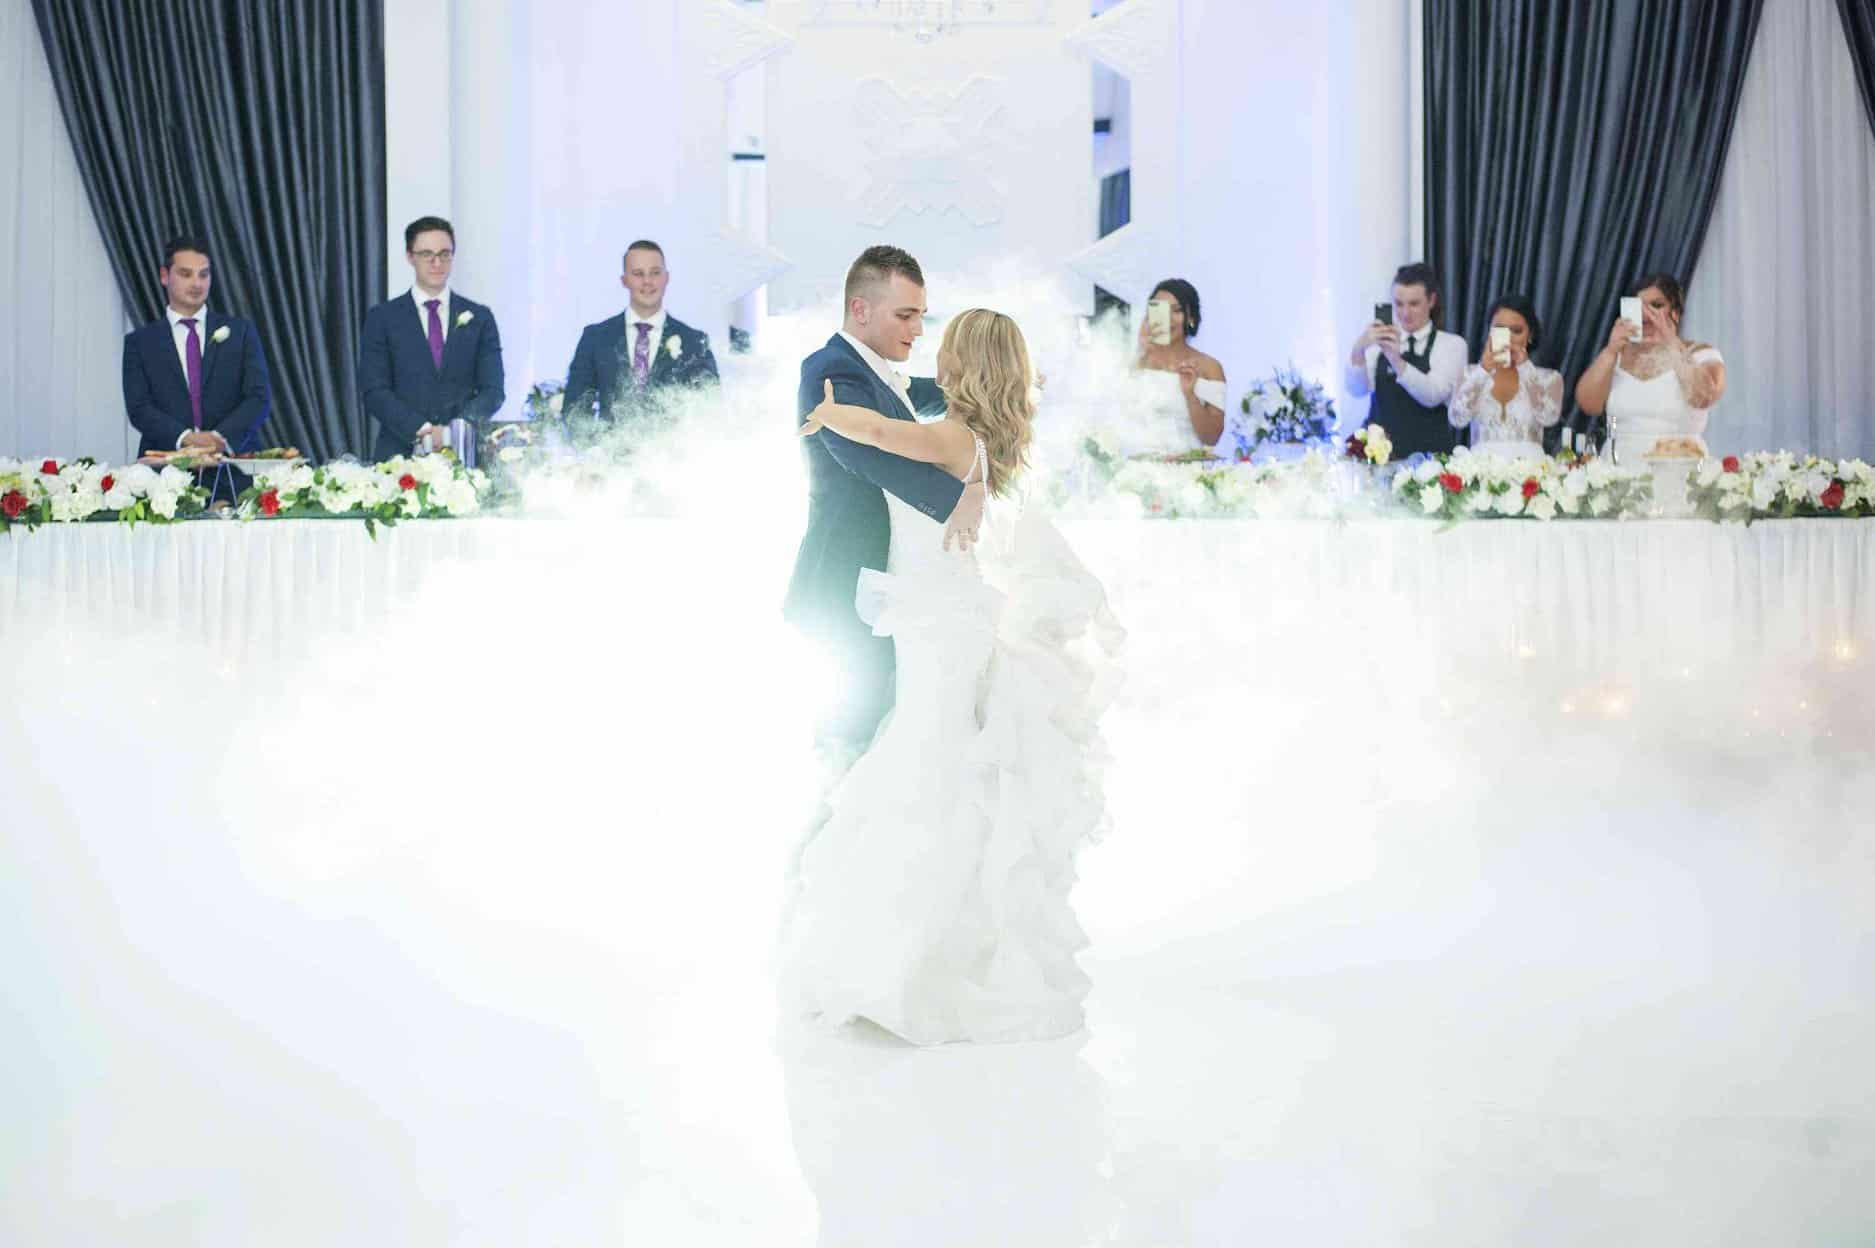 2019 Guide on How to Write Your Wedding Vows - Vines of the